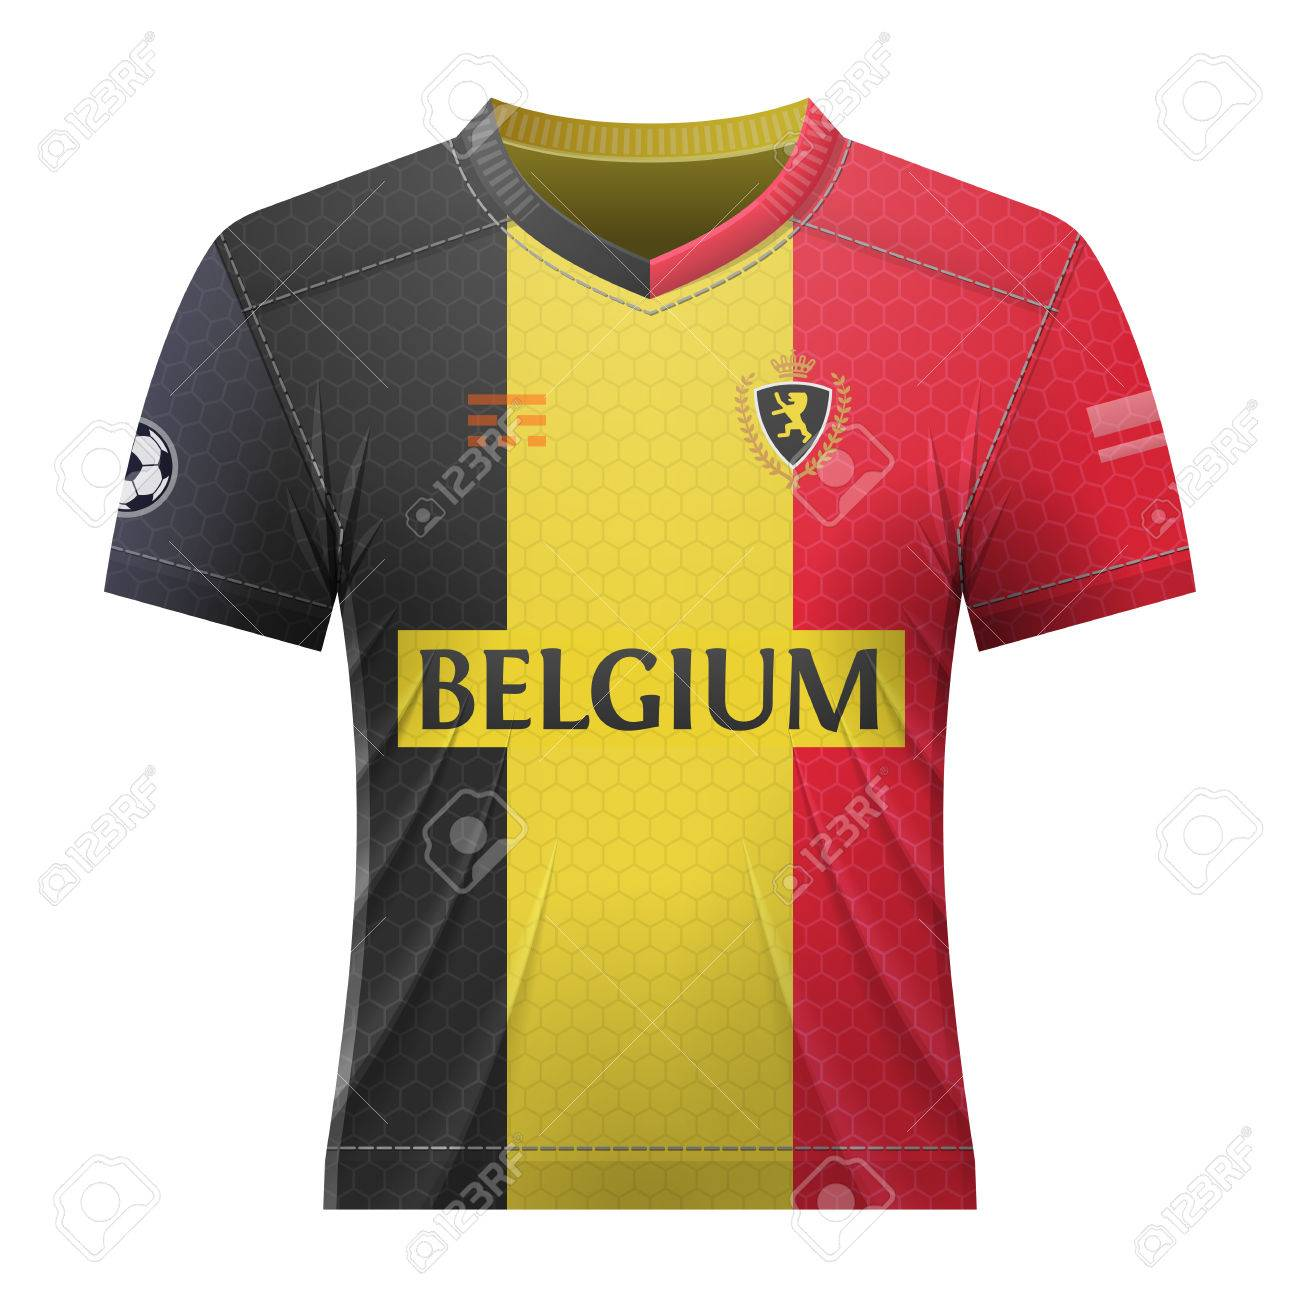 Soccer shirt in colors of belgian flag. National jersey for football team  of Belgium. fb04326f9